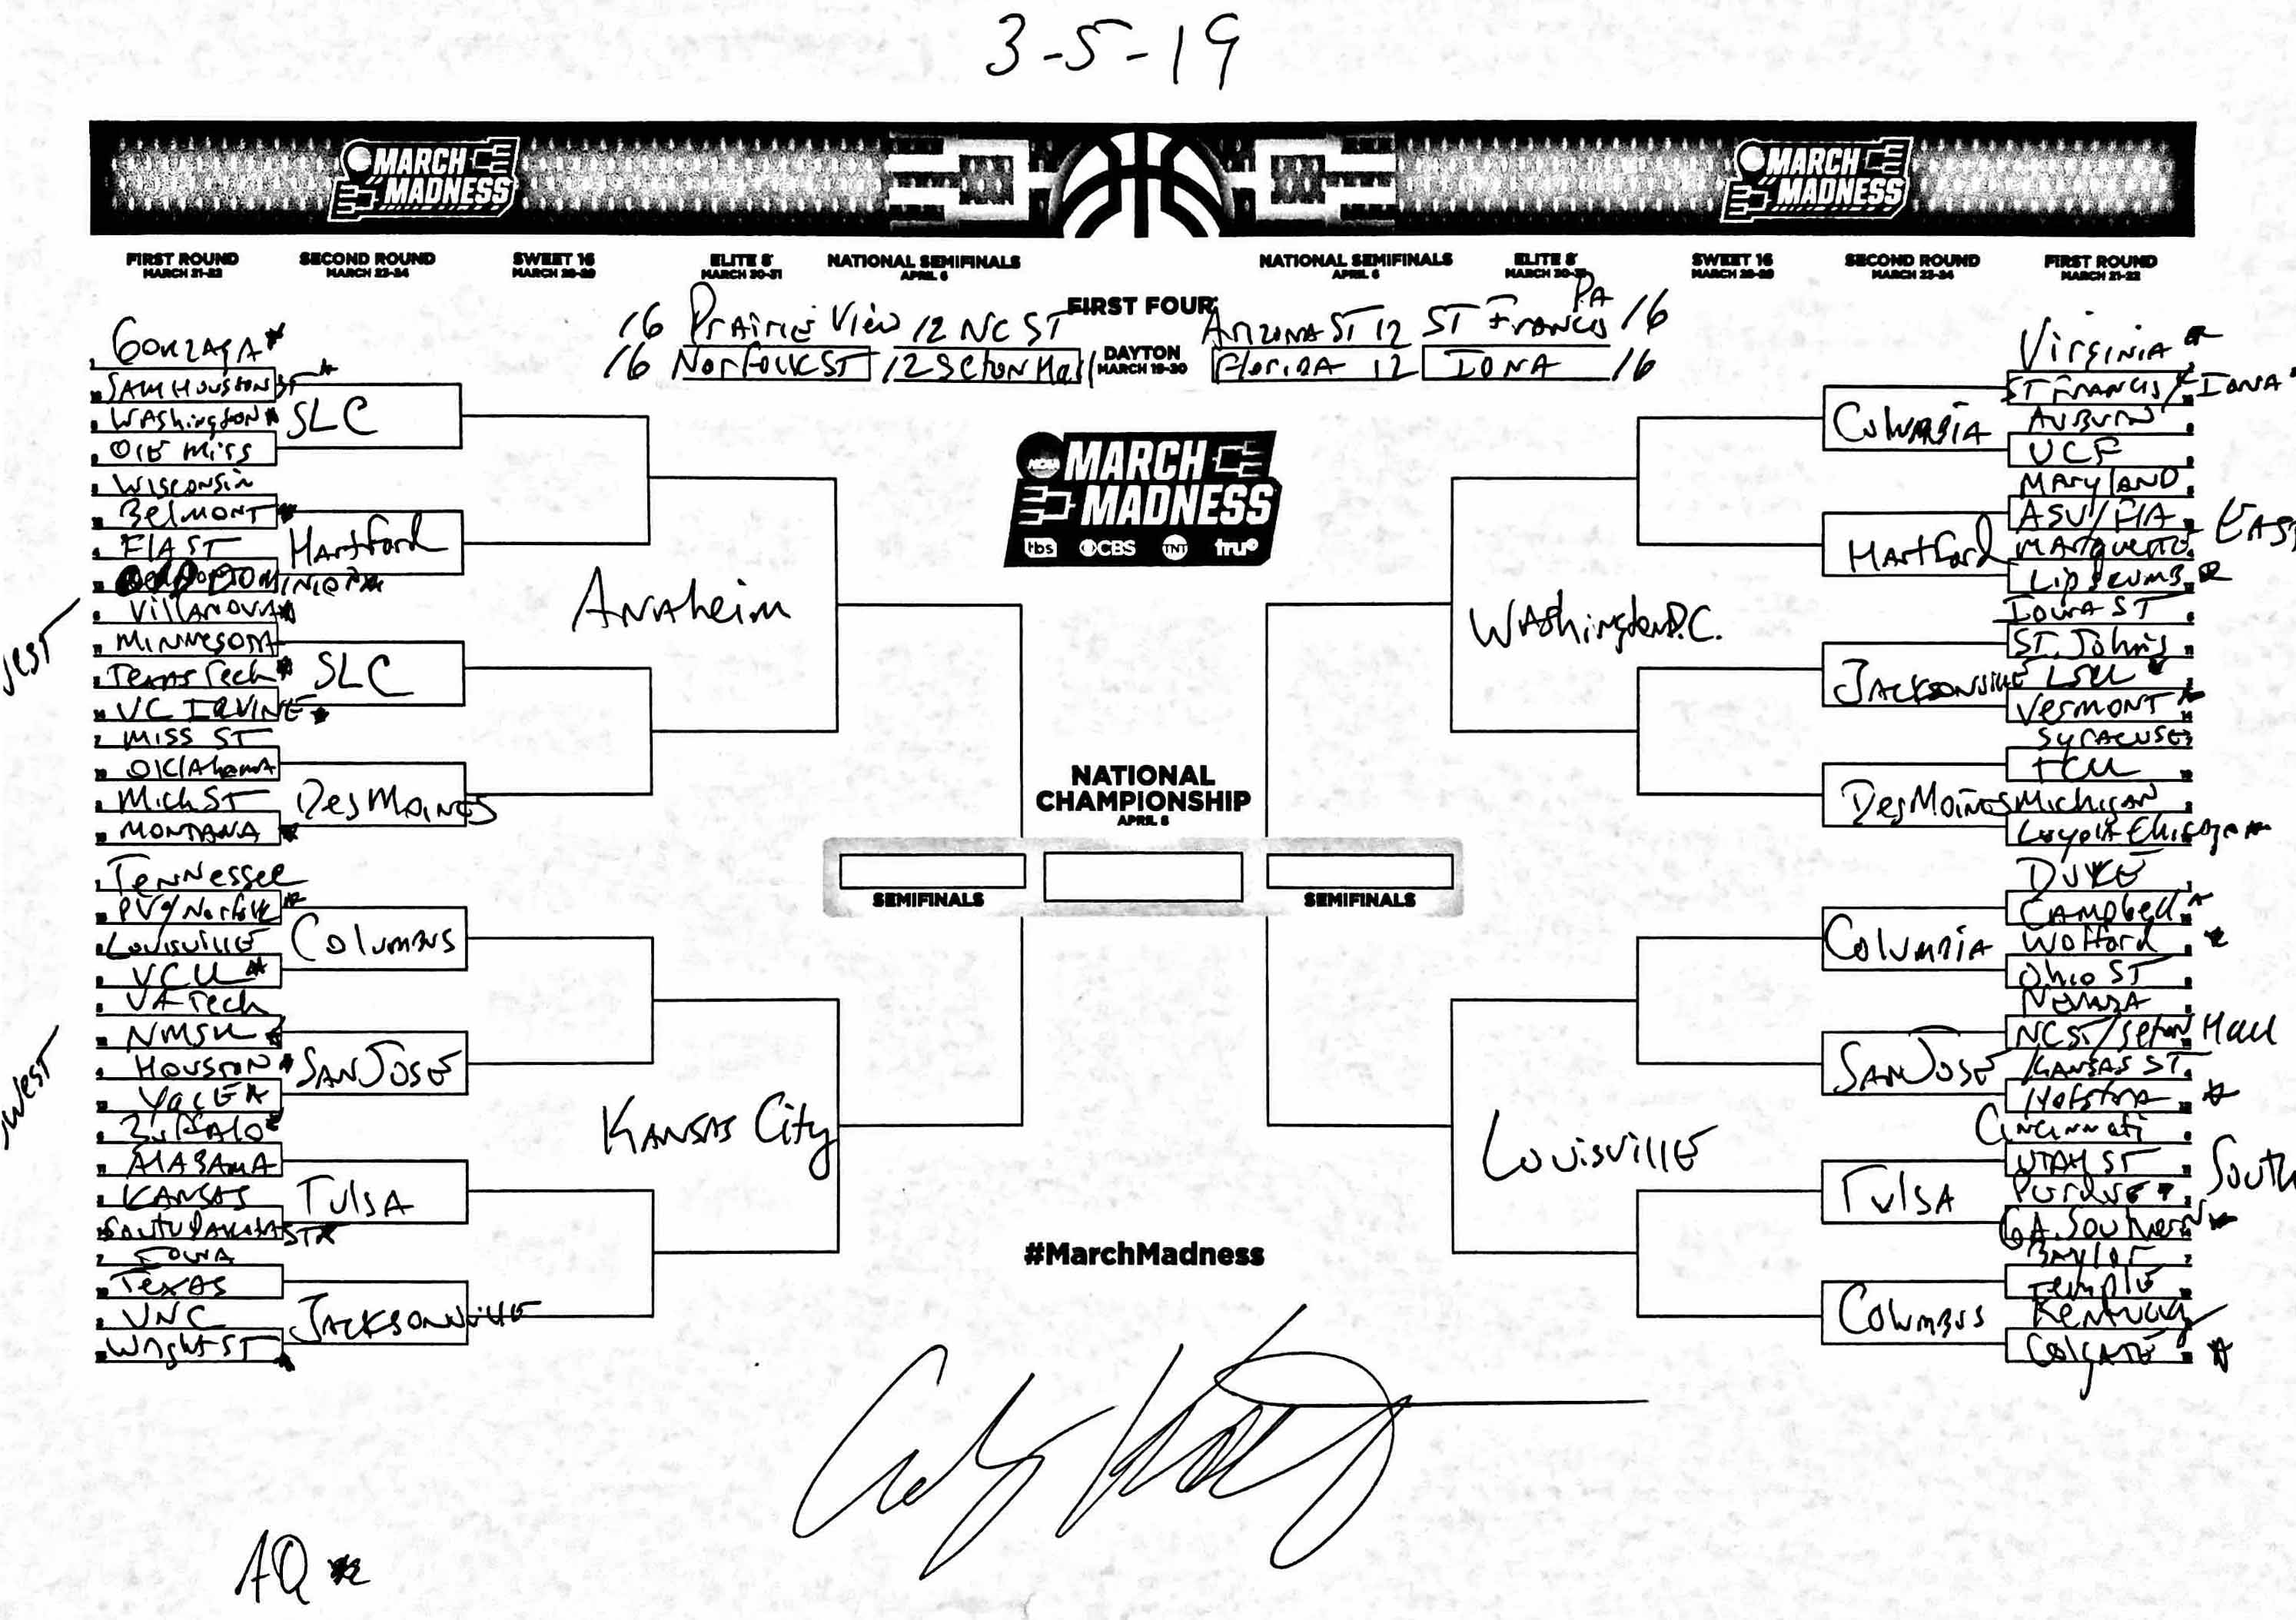 March Madness Projected 2019 Ncaa Tournament Bracket: The Complete March Madness Field Of 68, Predicted In The